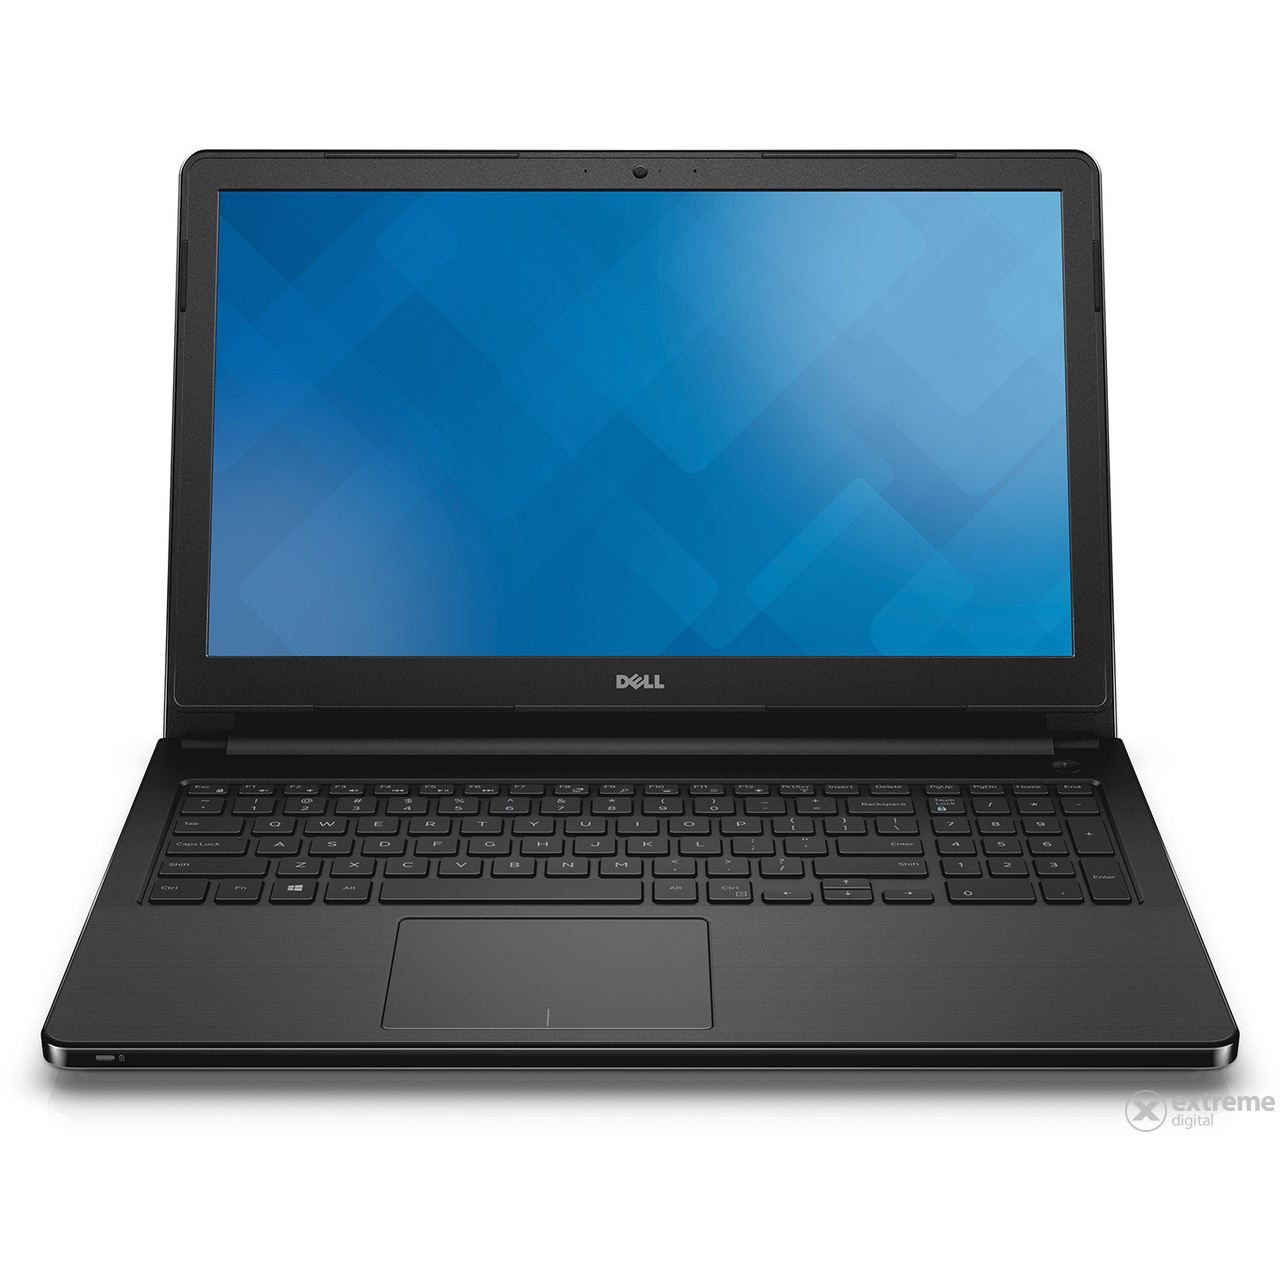 dell-vostro-3558-179723-notebook-fekete-windows-8-1-pro-operacios-rendszer_3a8e9382.jpg